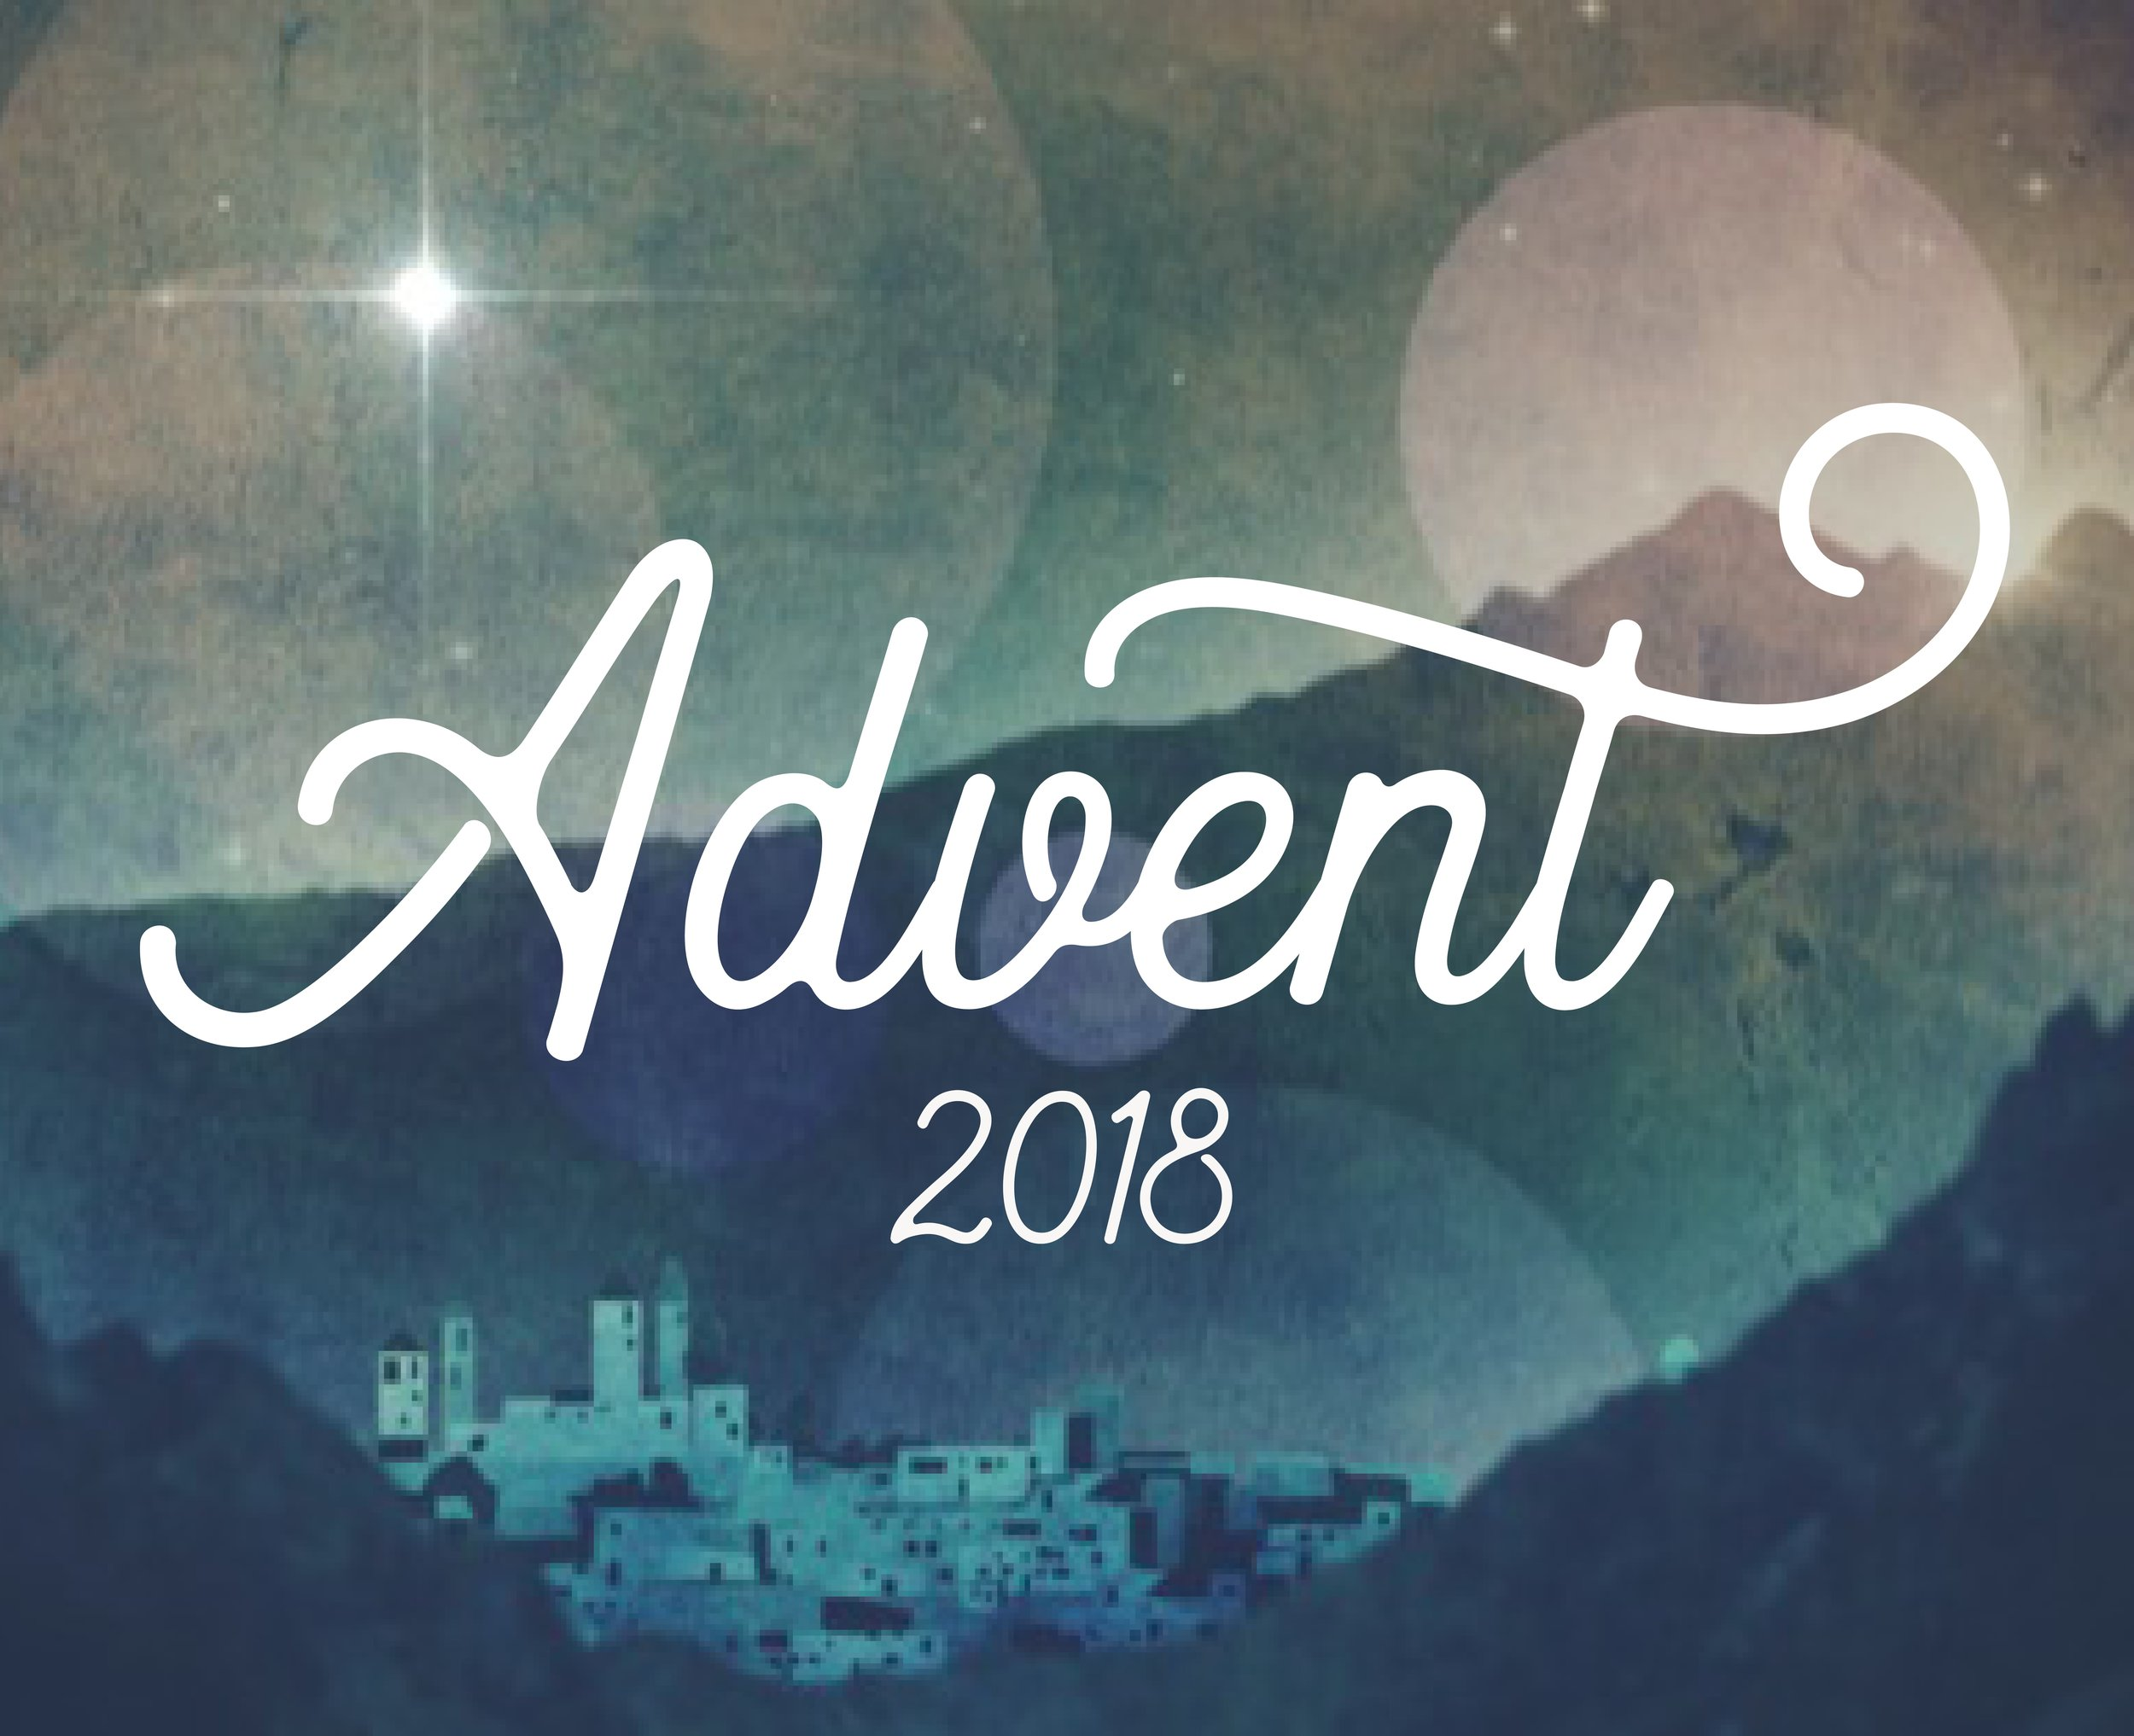 The word Advent means a coming into being or view, an arrival. In the Church, Advent is observed the four weeks leading up to Christmas Day, the day we celebrate the Incarnation, the birth of Jesus into this world. It is a season of preparation, of looking forward and of waiting for something greater; both for the yearly celebration of the event of Christ's birth, and for the time when Christ will come again.